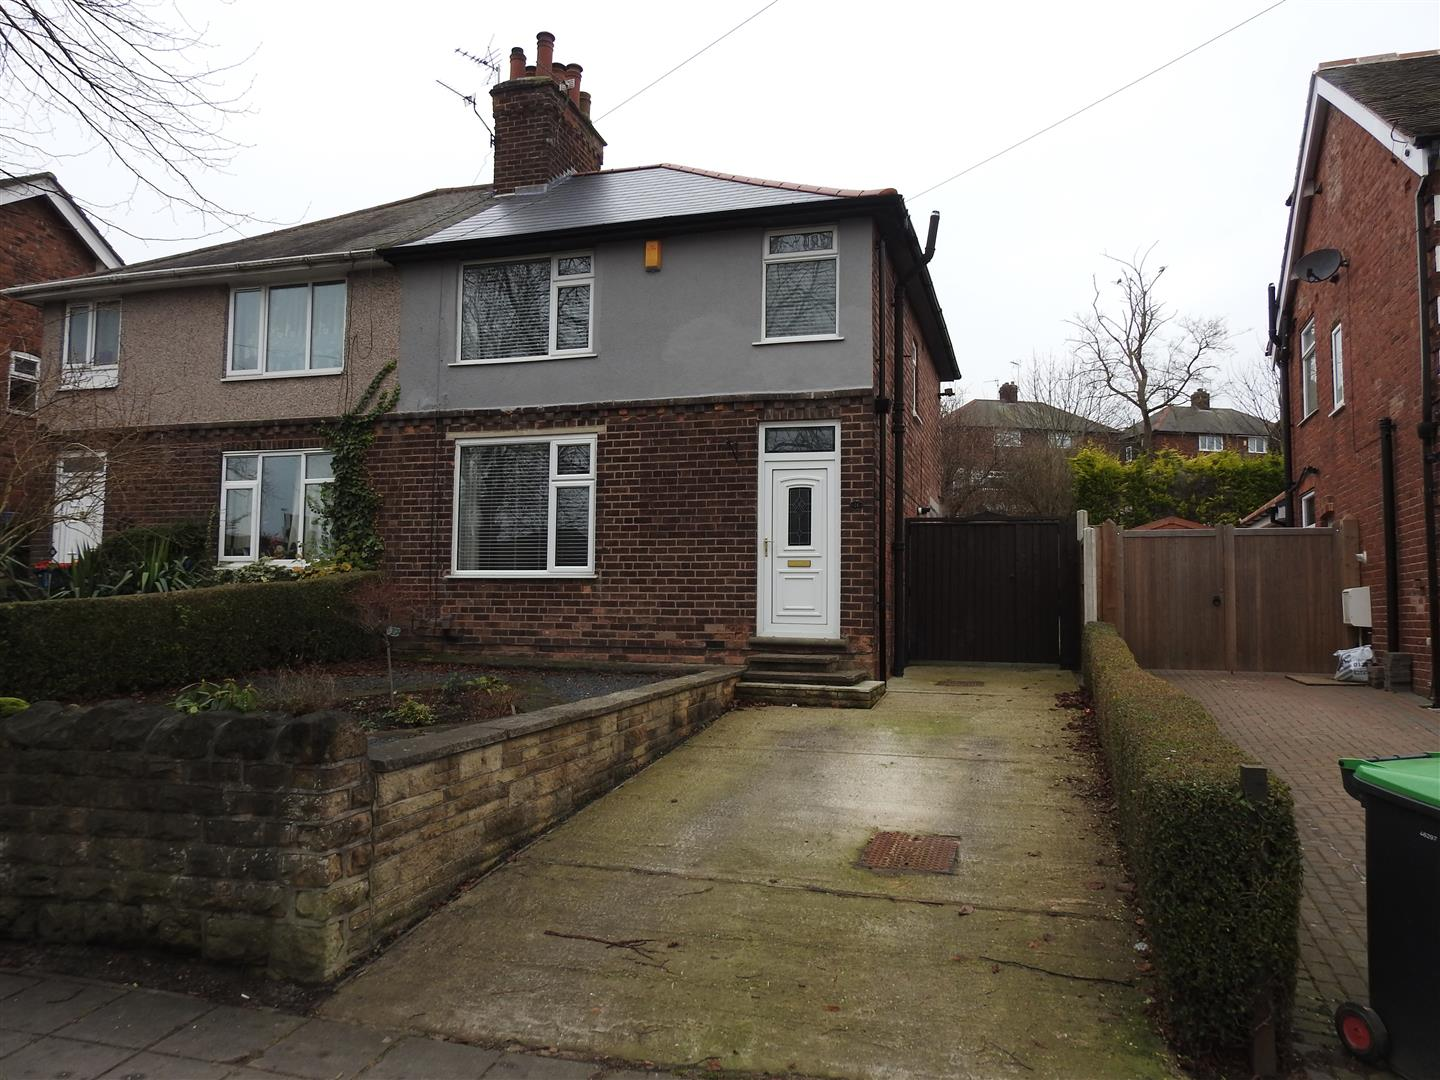 3 Bedrooms Semi Detached House for sale in Central Avenue, Hucknall, Nottingham